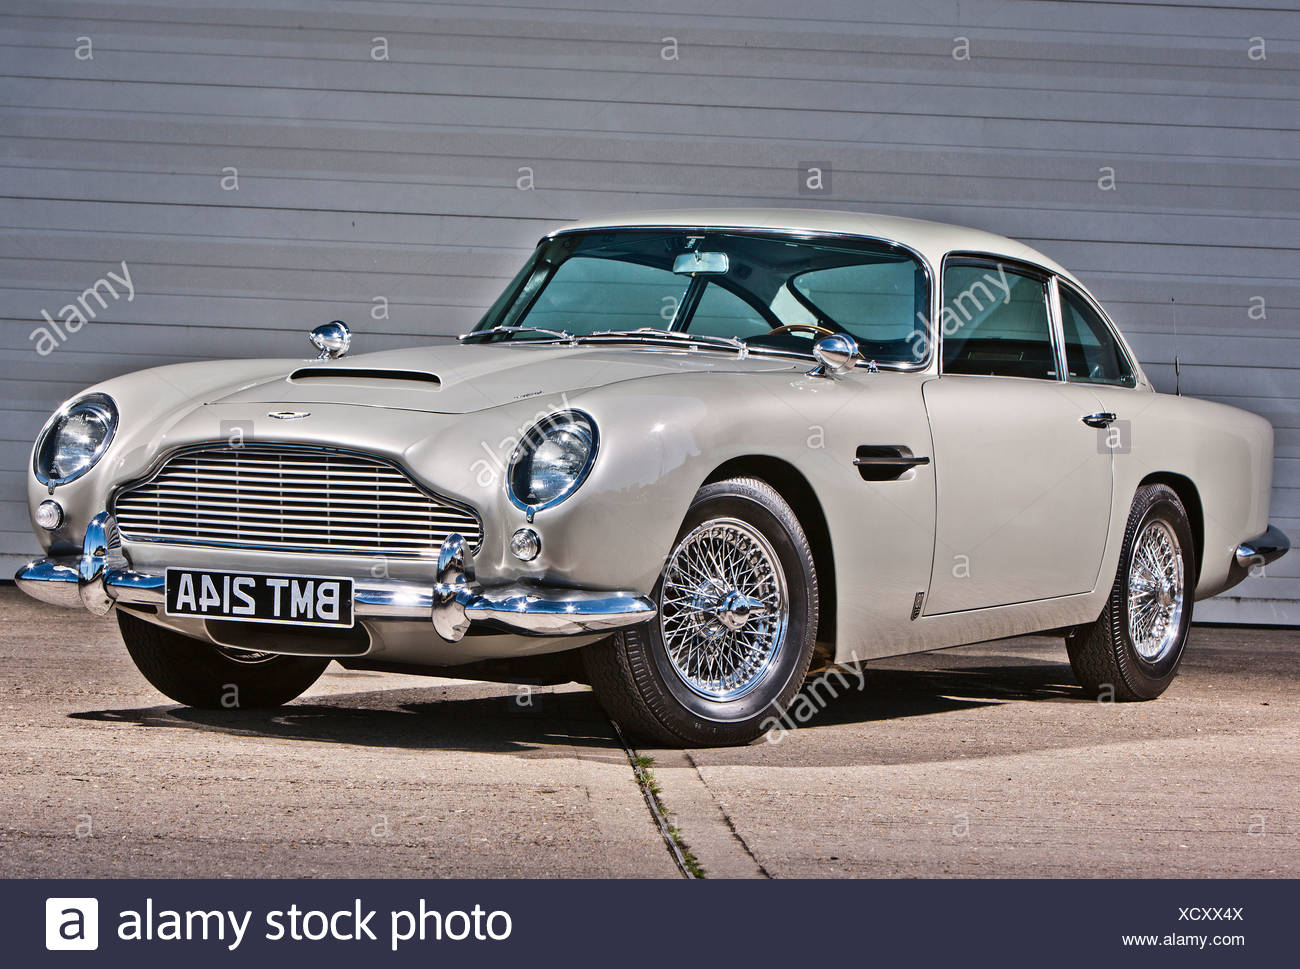 Aston Martin DB5, James Bond Classic Car